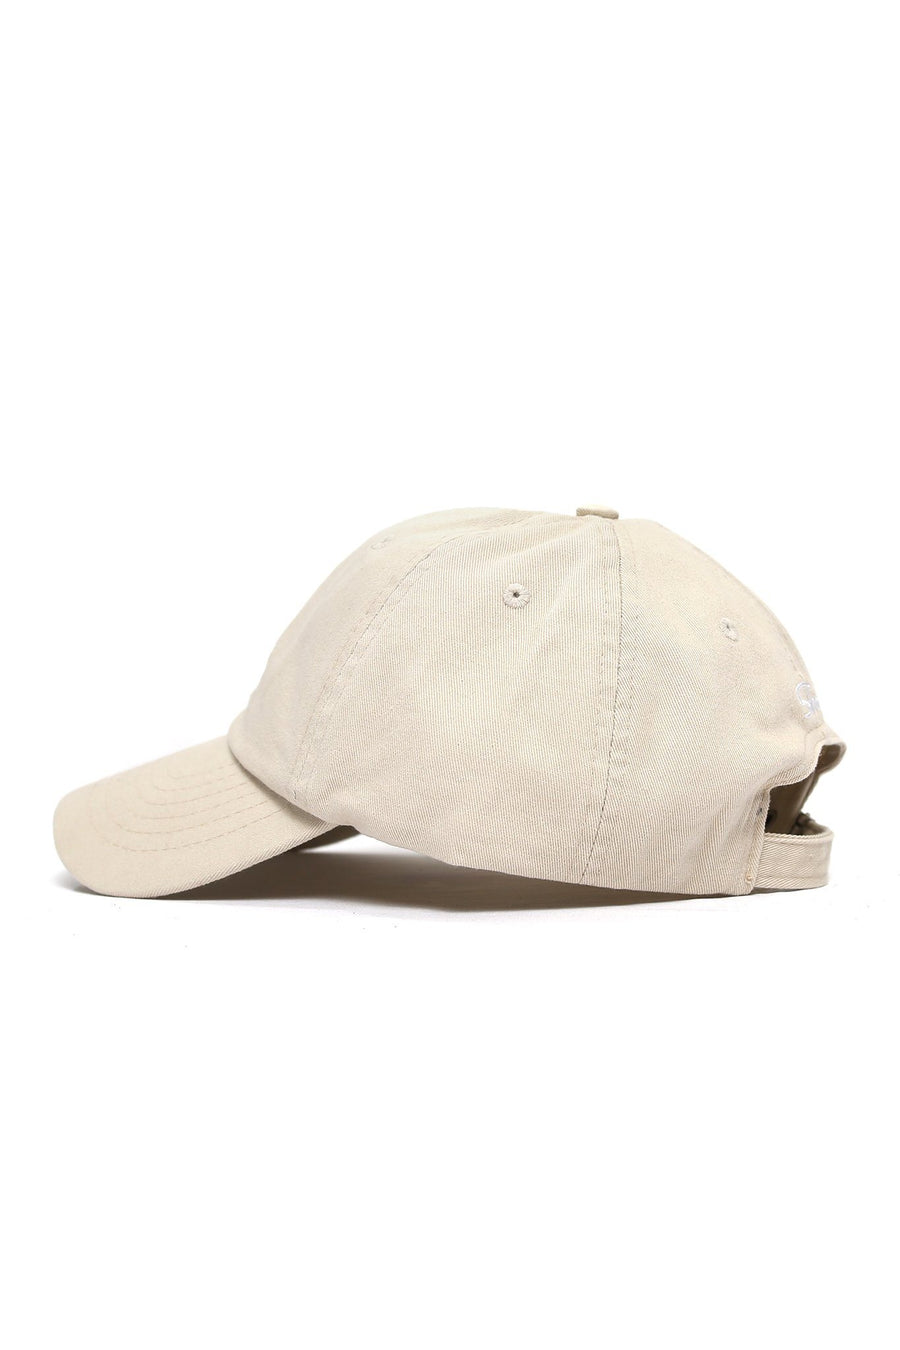 Sun Wave Solid White Logo Cap - Khaki - Shore